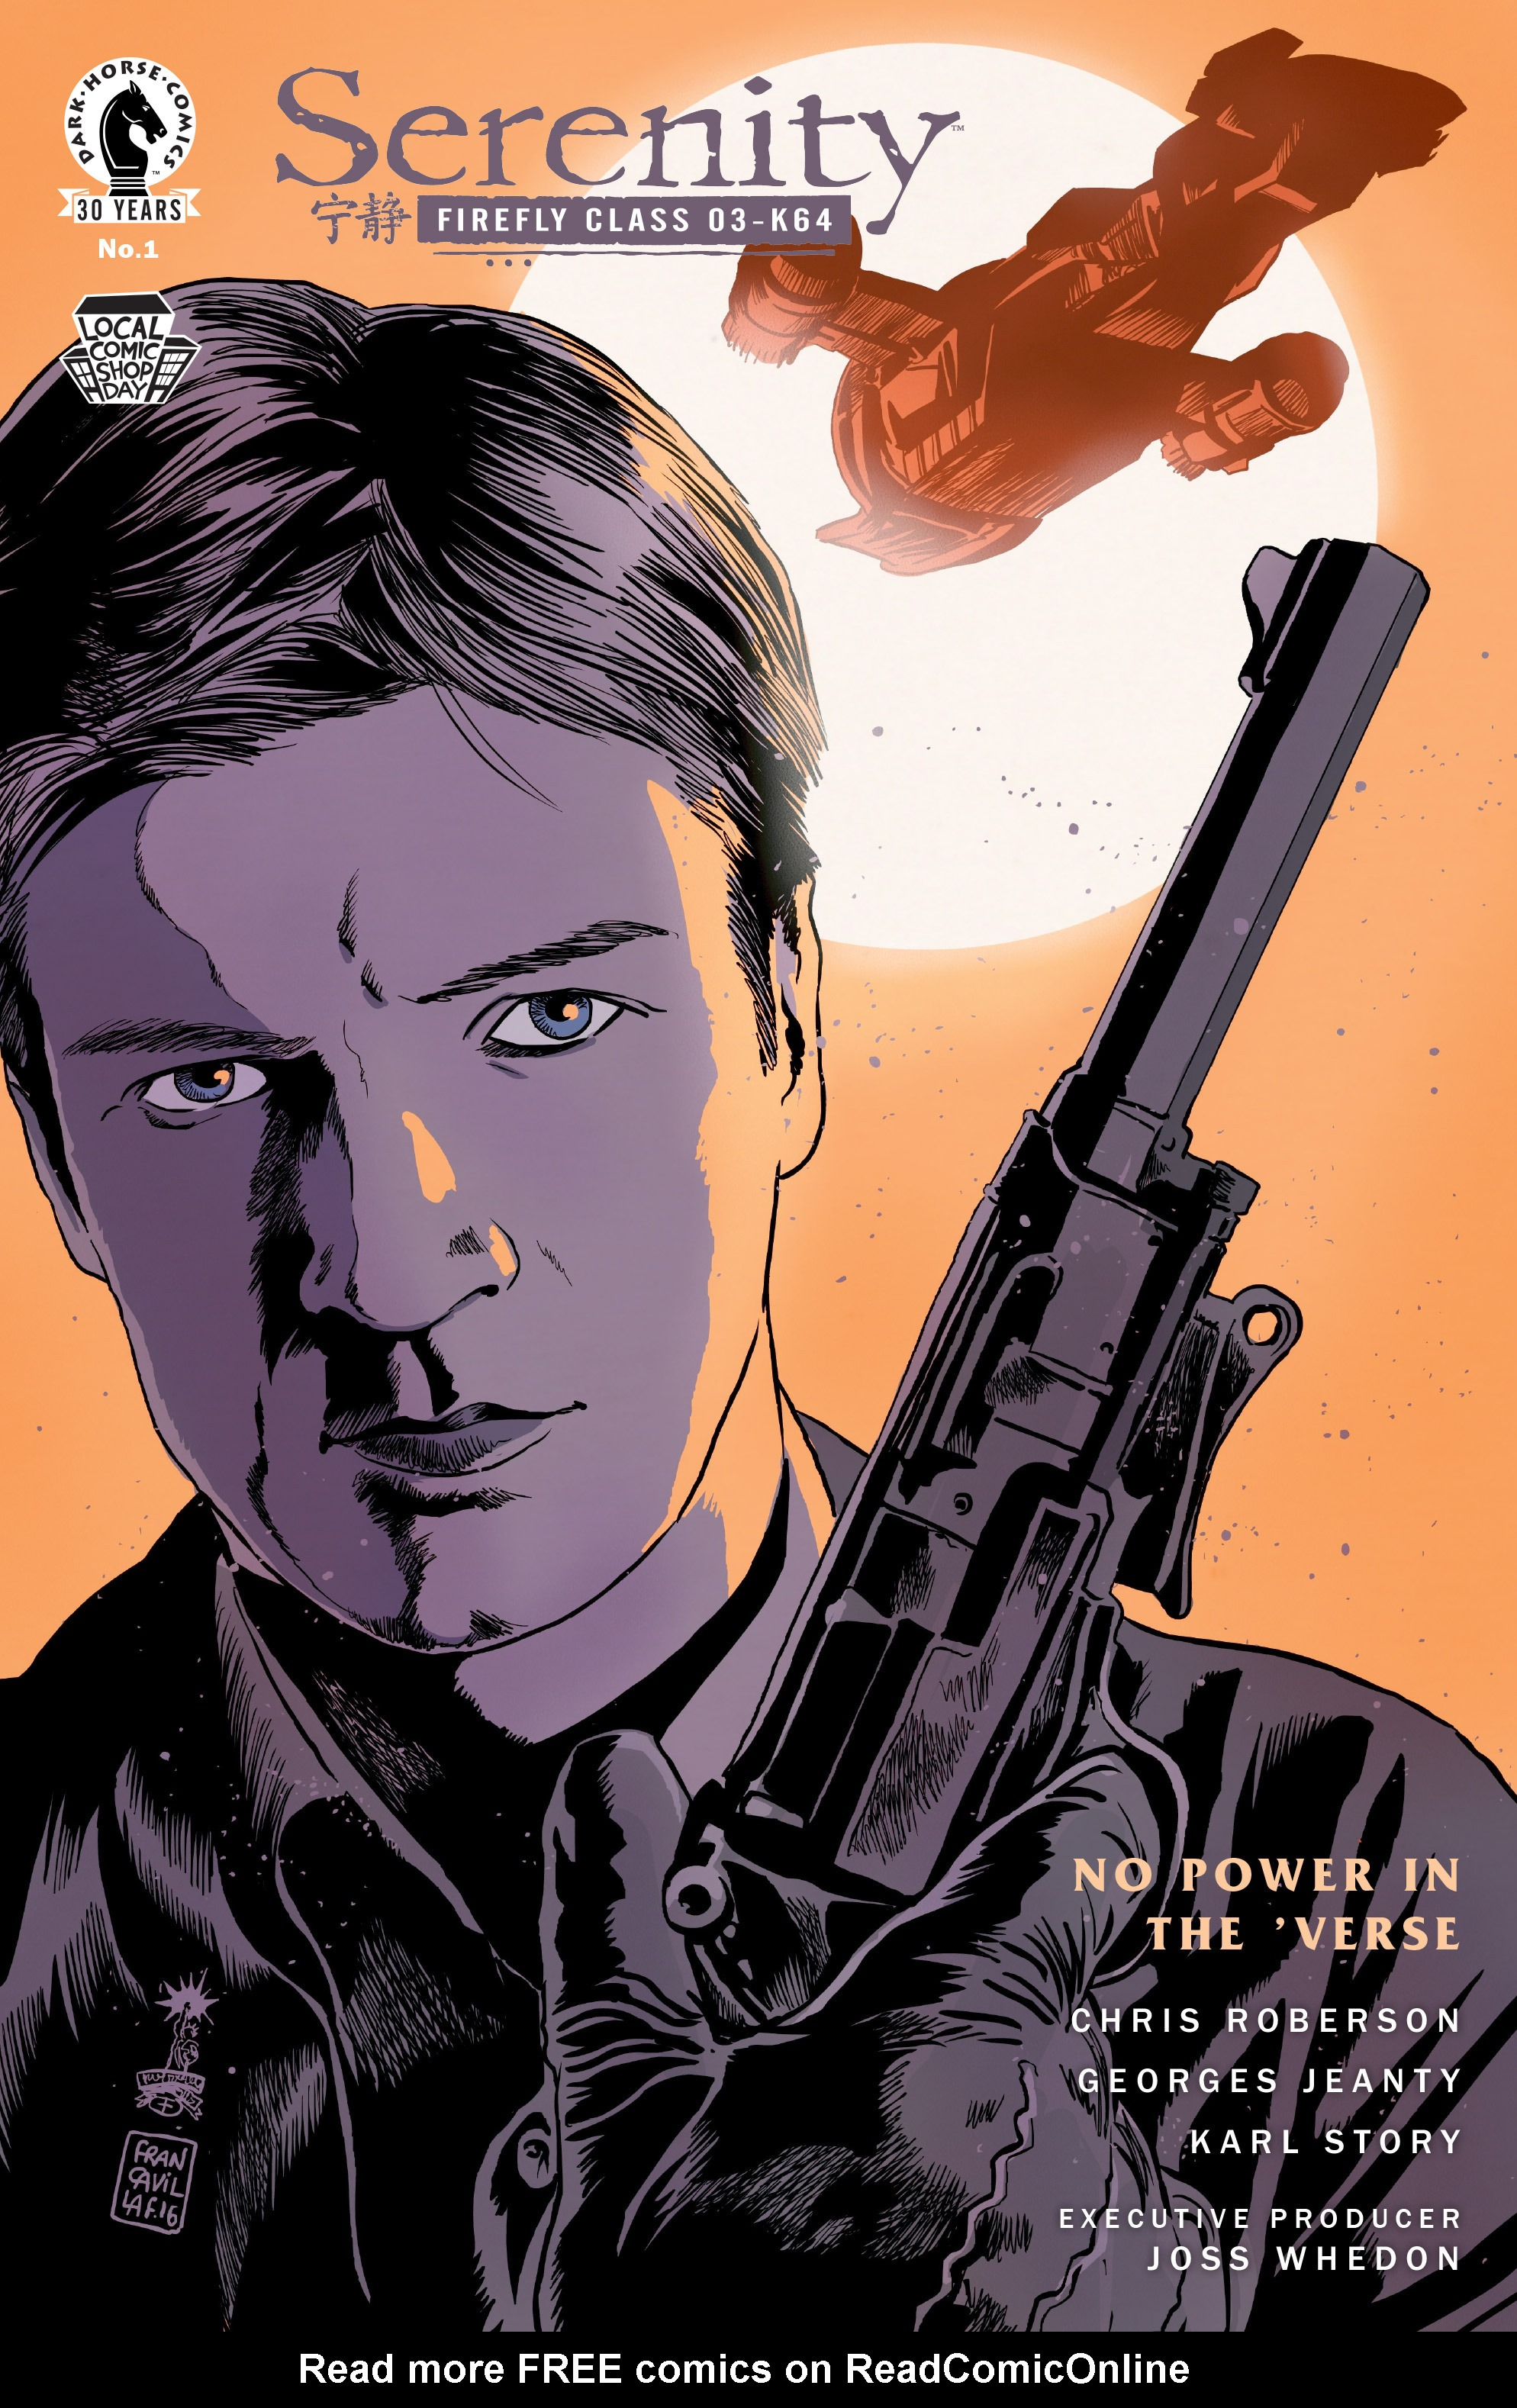 Read online Serenity: Firefly Class 03-K64 – No Power in the 'Verse comic -  Issue #1 - 6